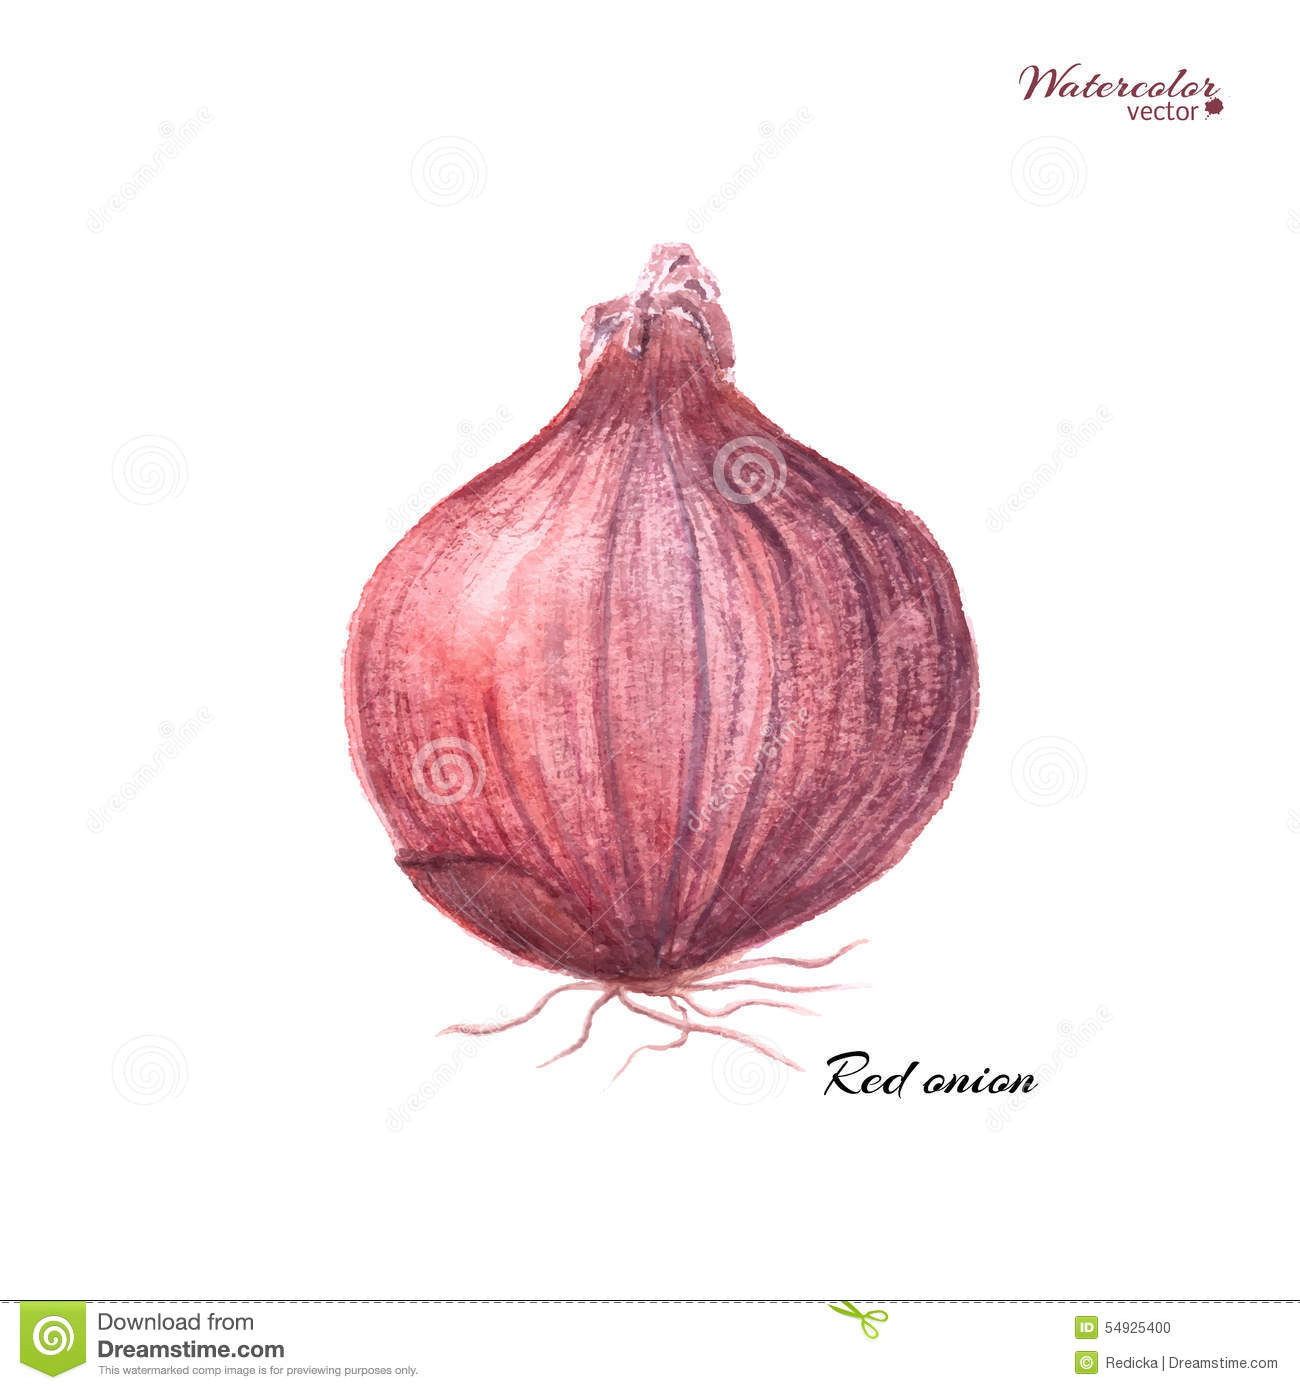 Red Onion Stock Vector - Image: 54925400